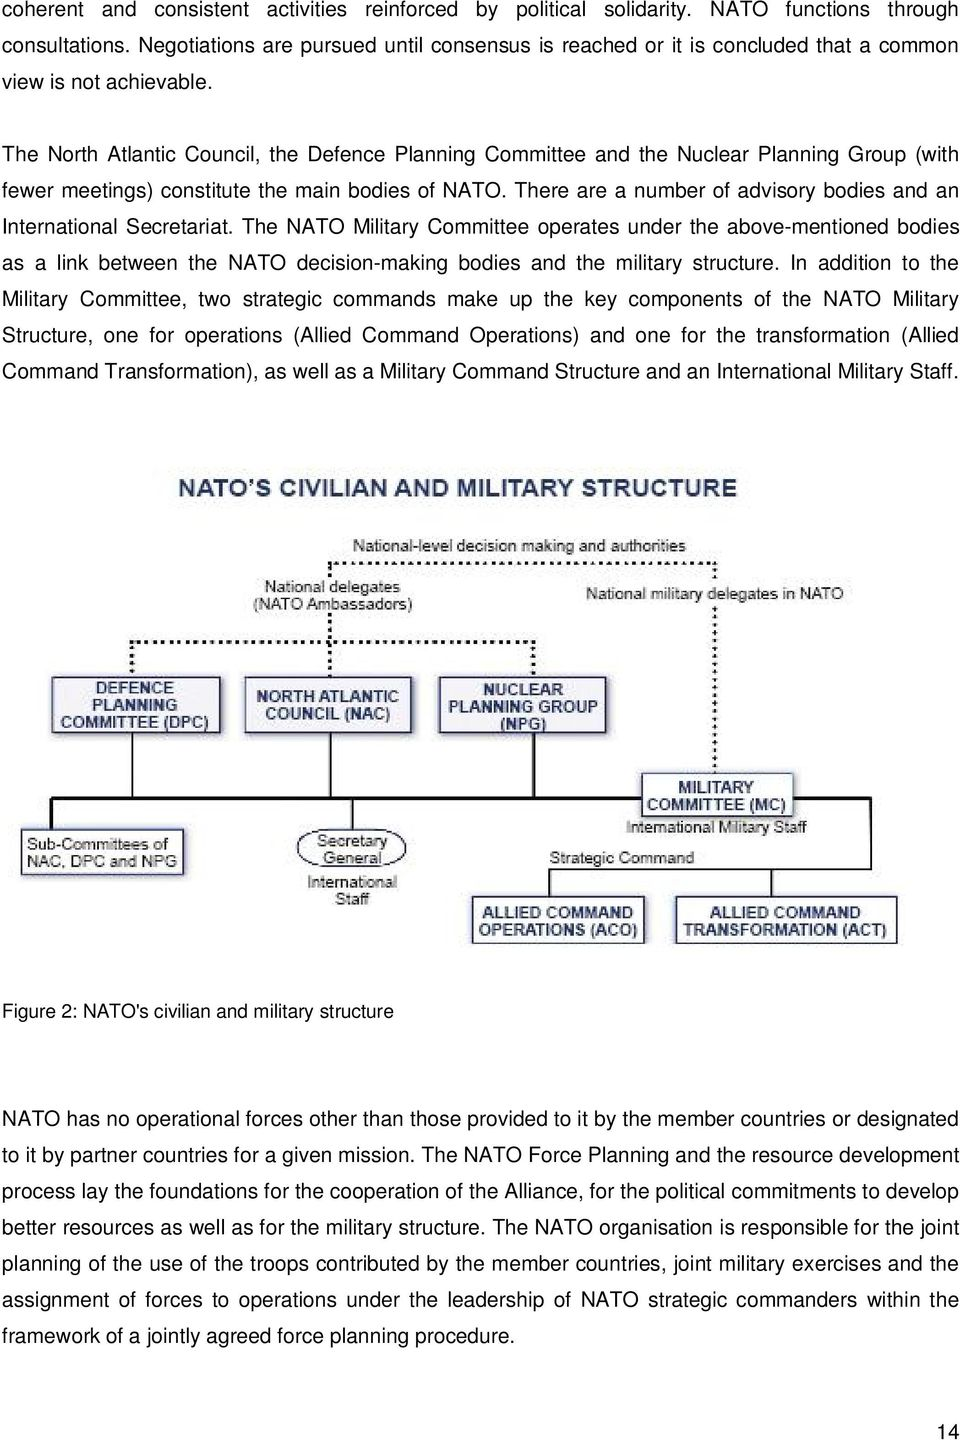 The North Atlantic Council, the Defence Planning Committee and the Nuclear Planning Group (with fewer meetings) constitute the main bodies of NATO.